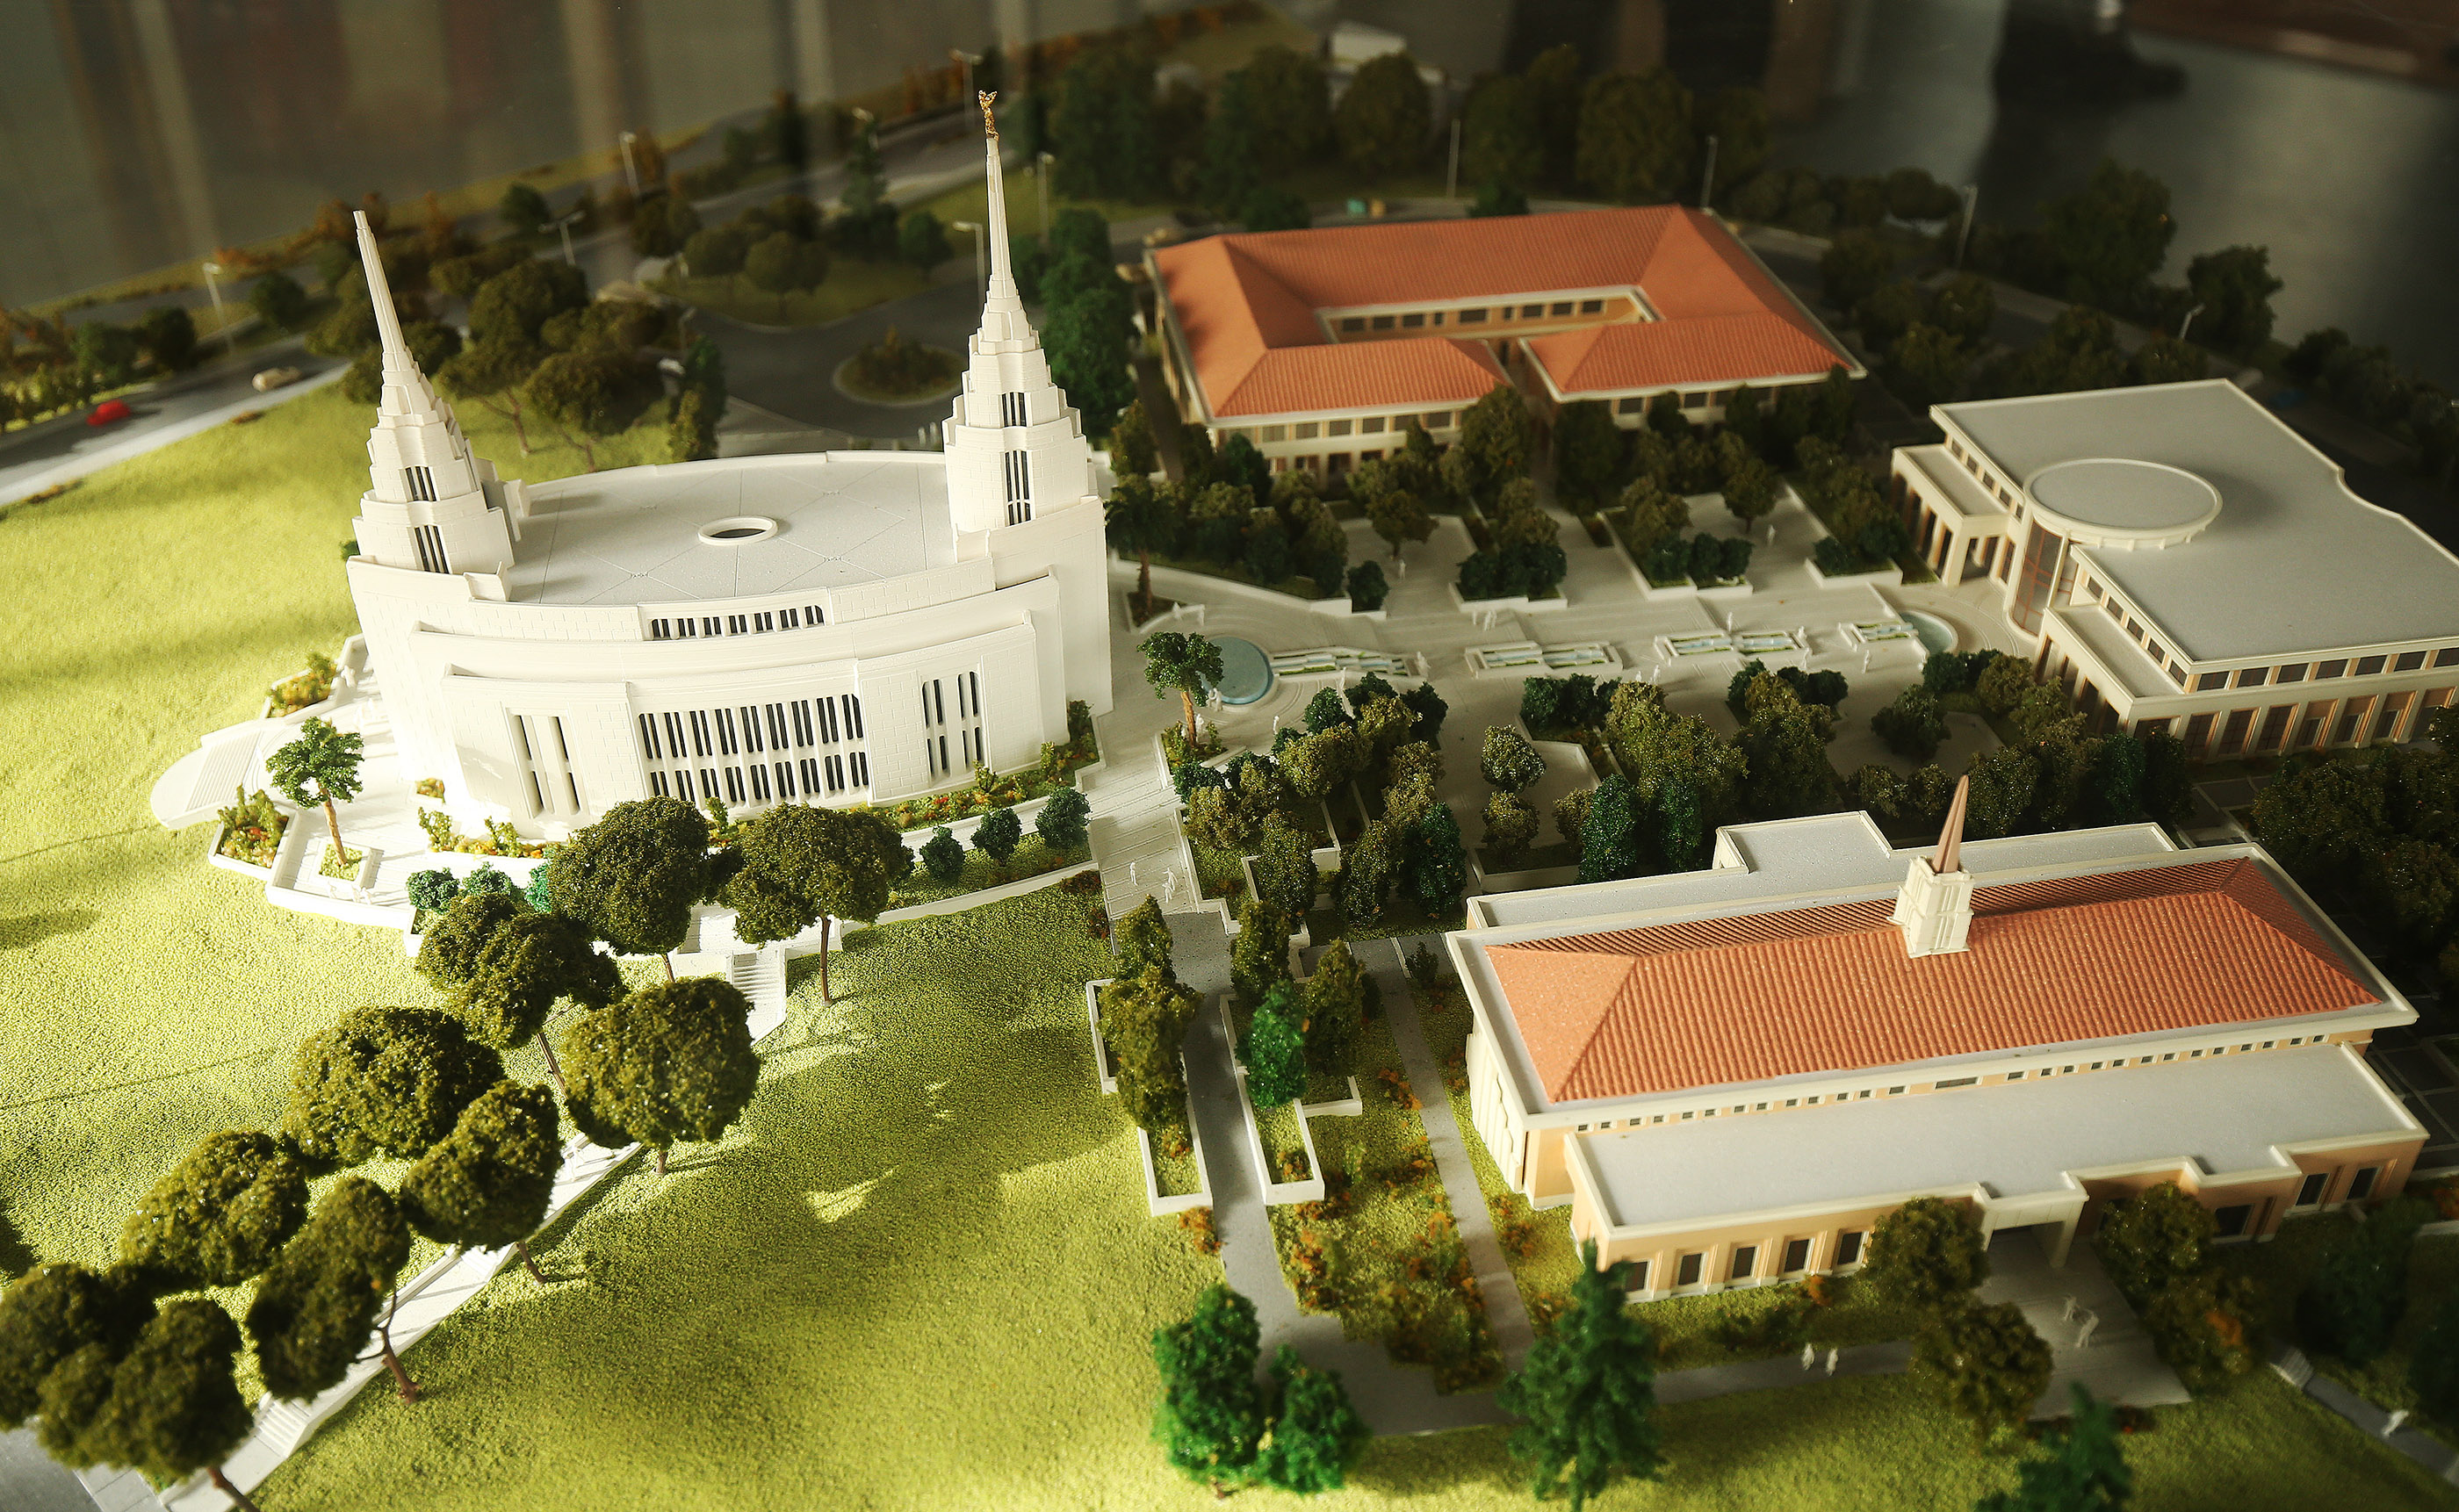 A display model shows the Rome Italy LDS Temple and grounds.